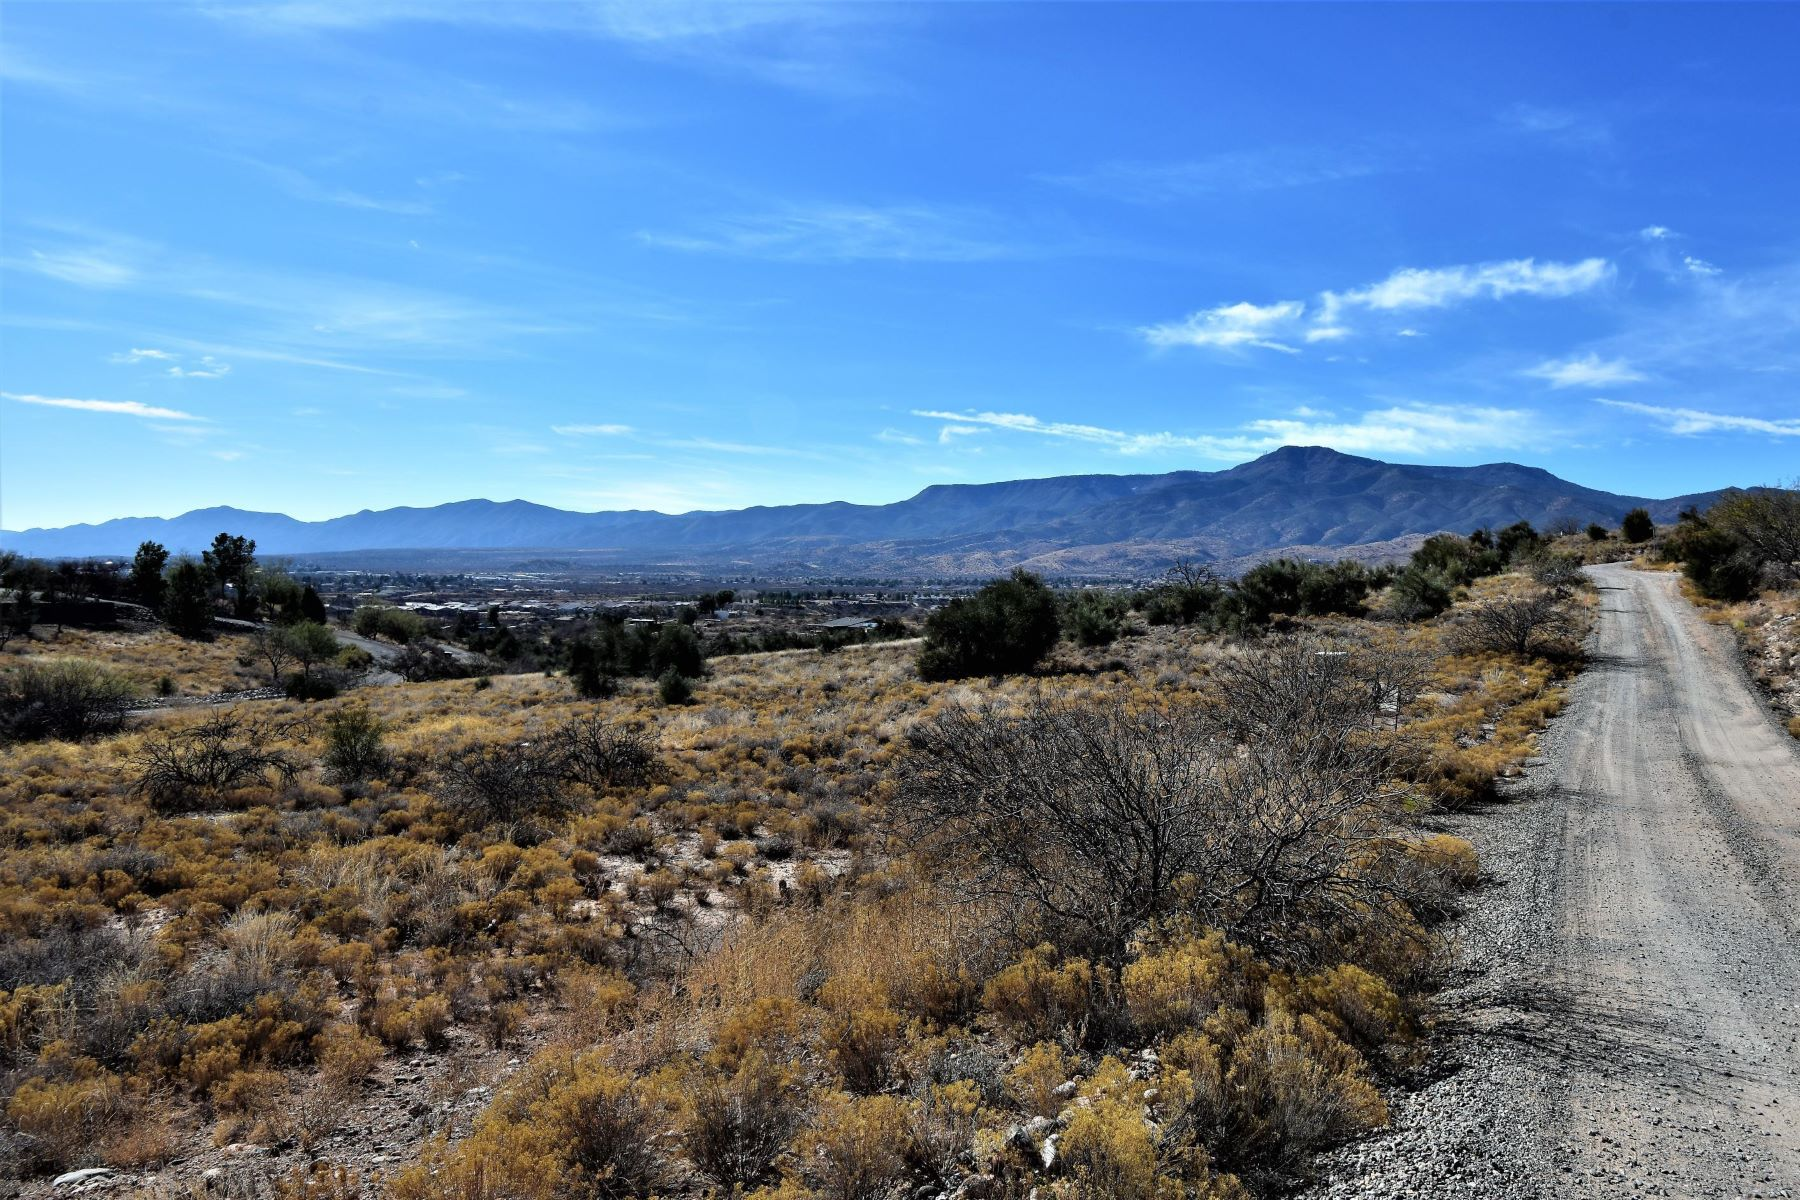 Land for Sale at 2.58 Acre Lot with Spectacular Views 00 E Cliffside Drive, Clarkdale, Arizona, 86324 United States